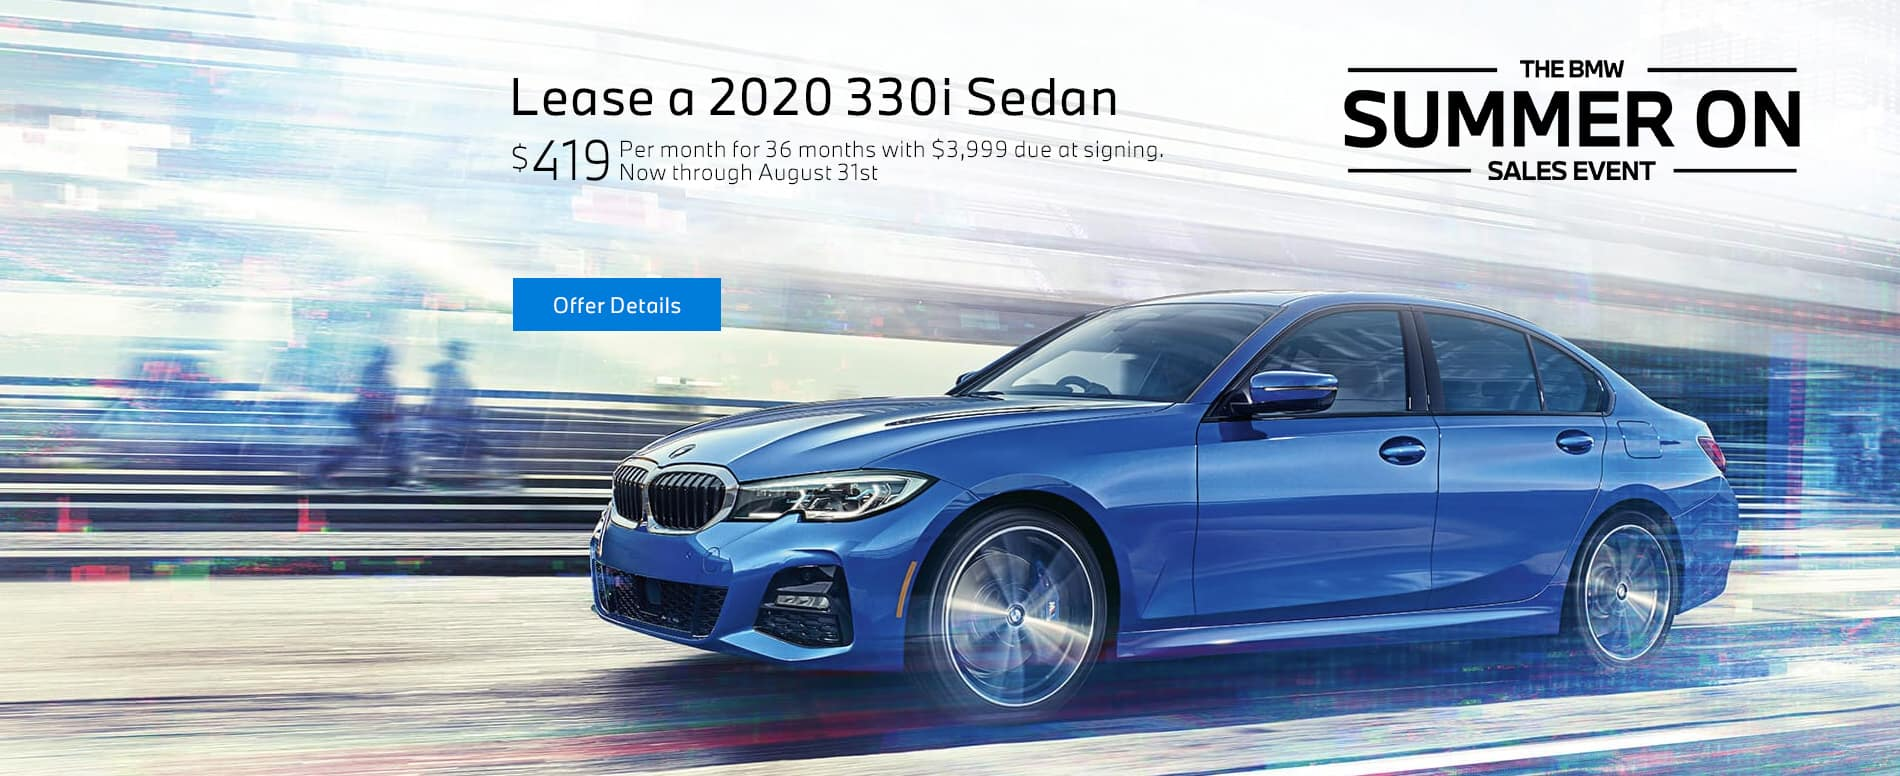 2020 330i Sedan at BMW of Fort Walton Beach